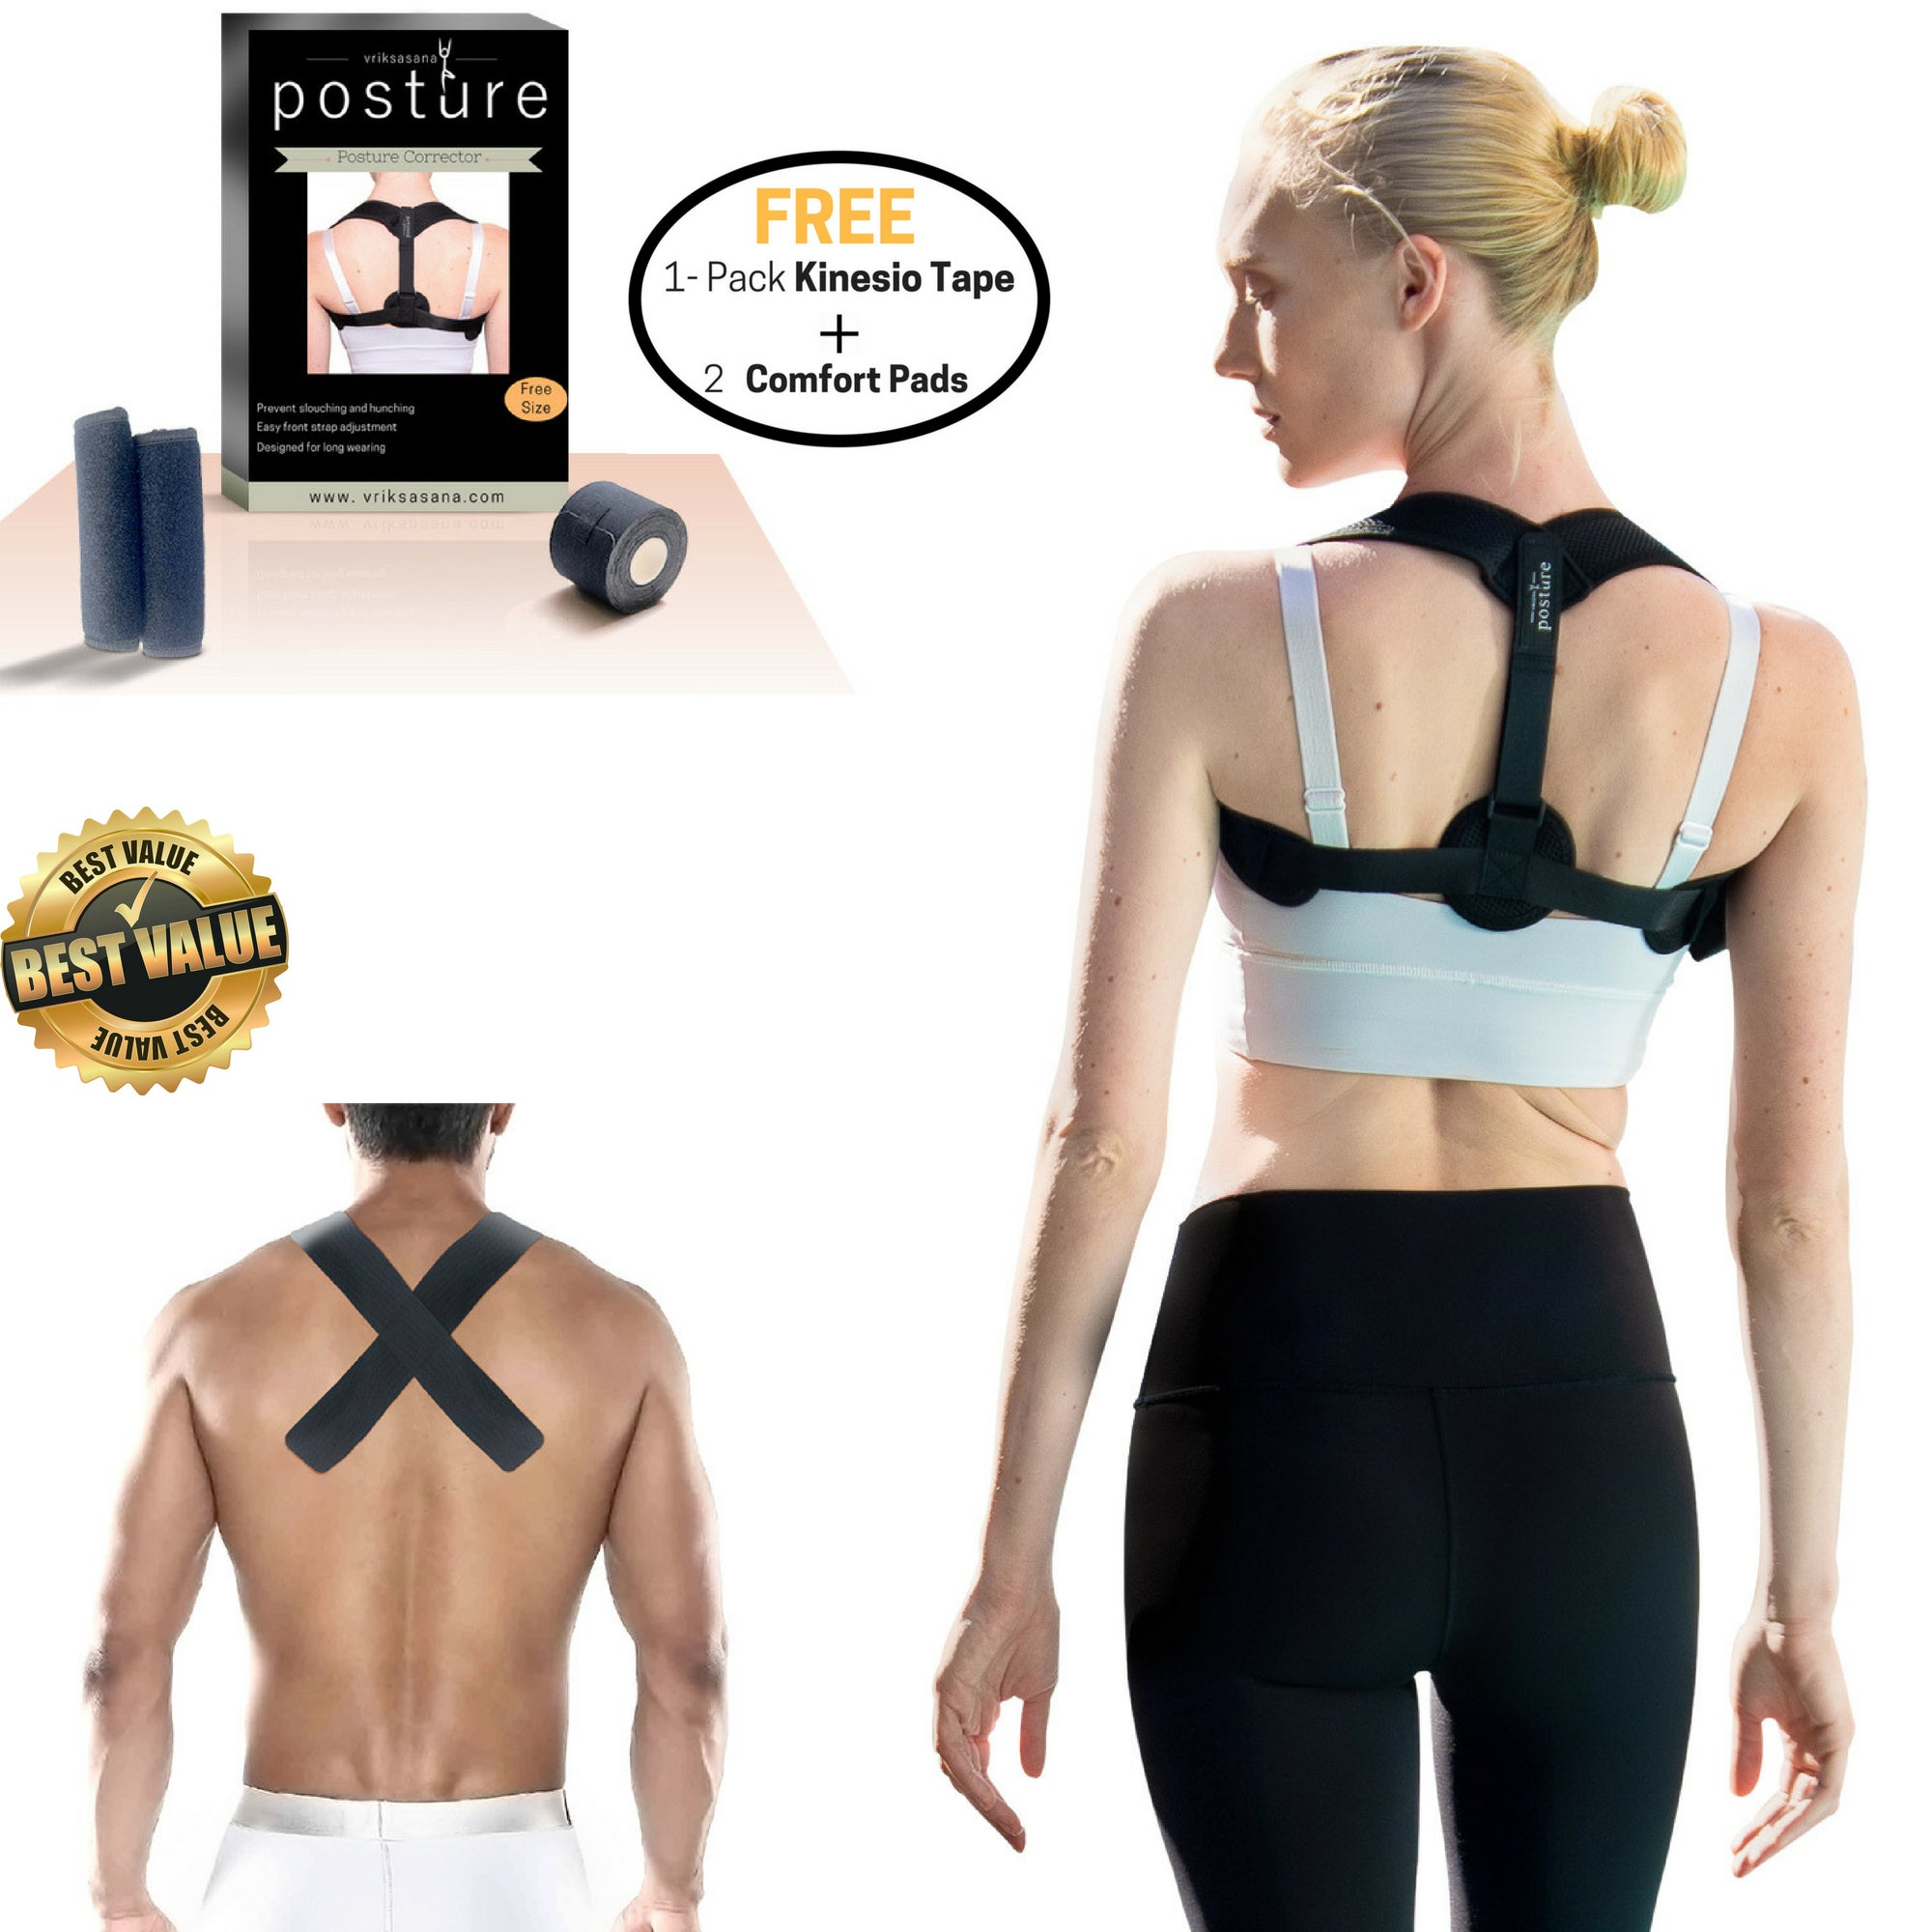 "Vriksasana Posture Corrector with 2"" Kinesiology Tape"